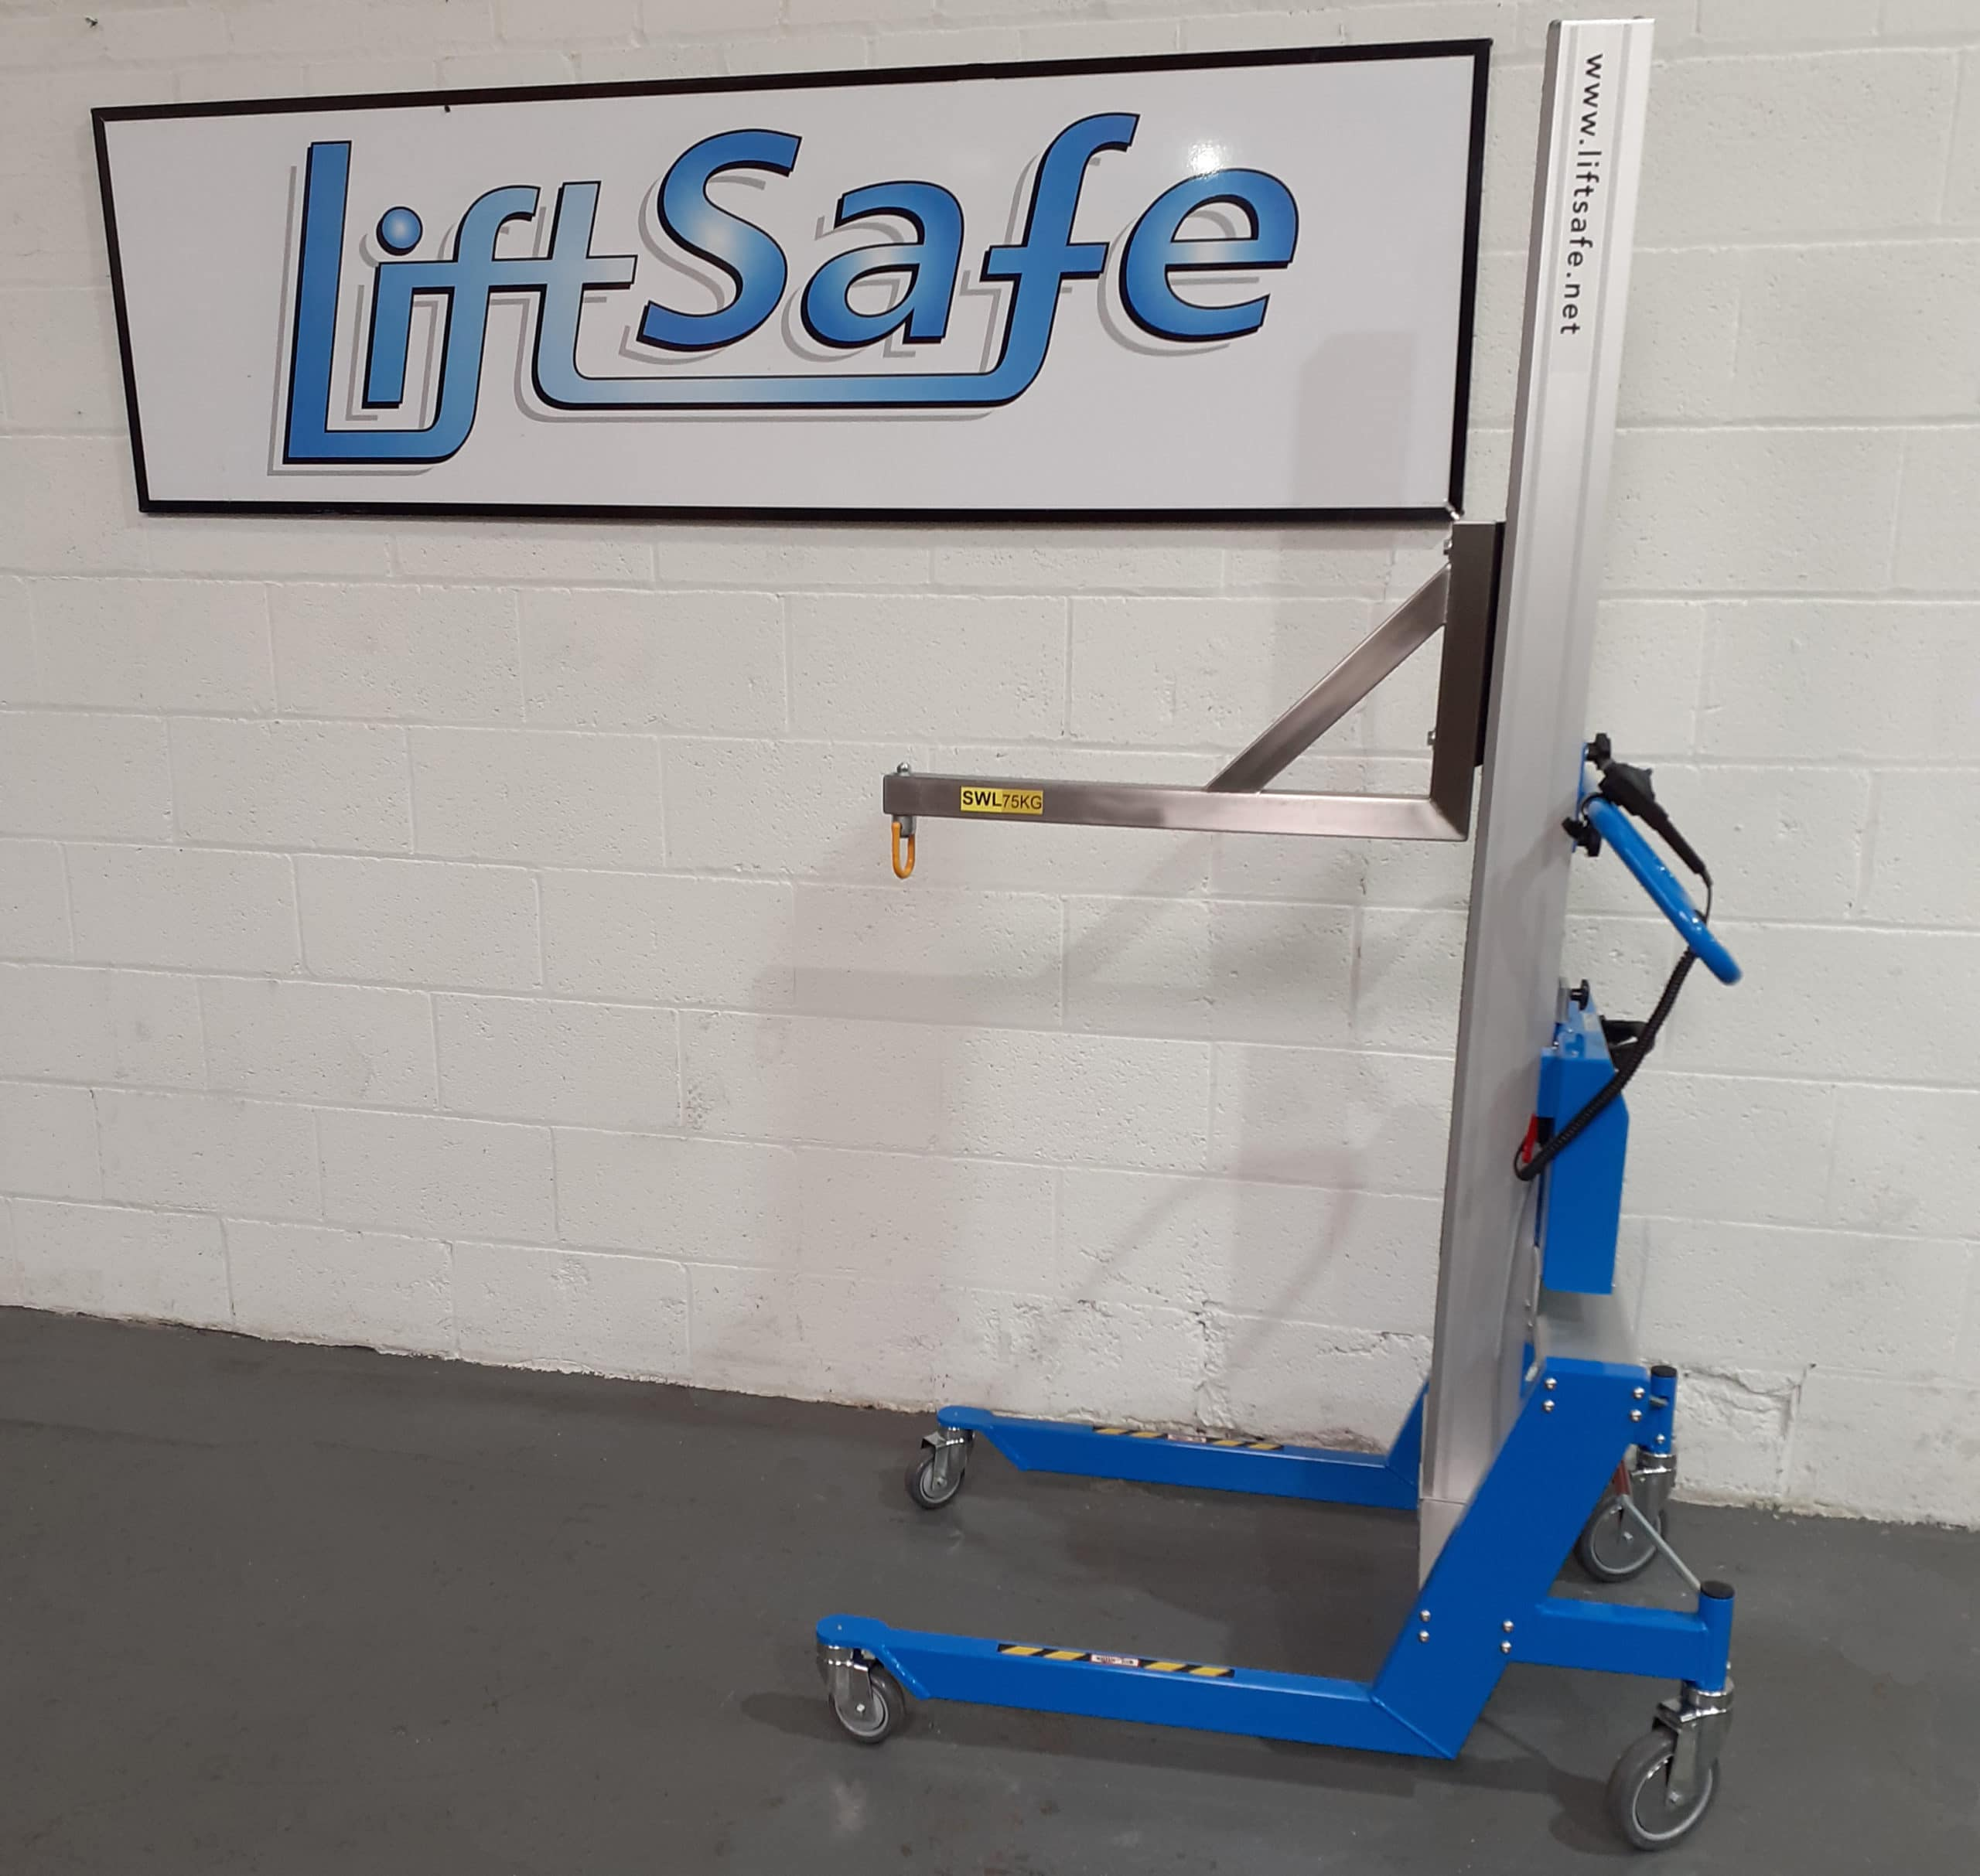 Scientific Instrumentation Company Takes Delivery of Lifting Equipment from Lift Safe